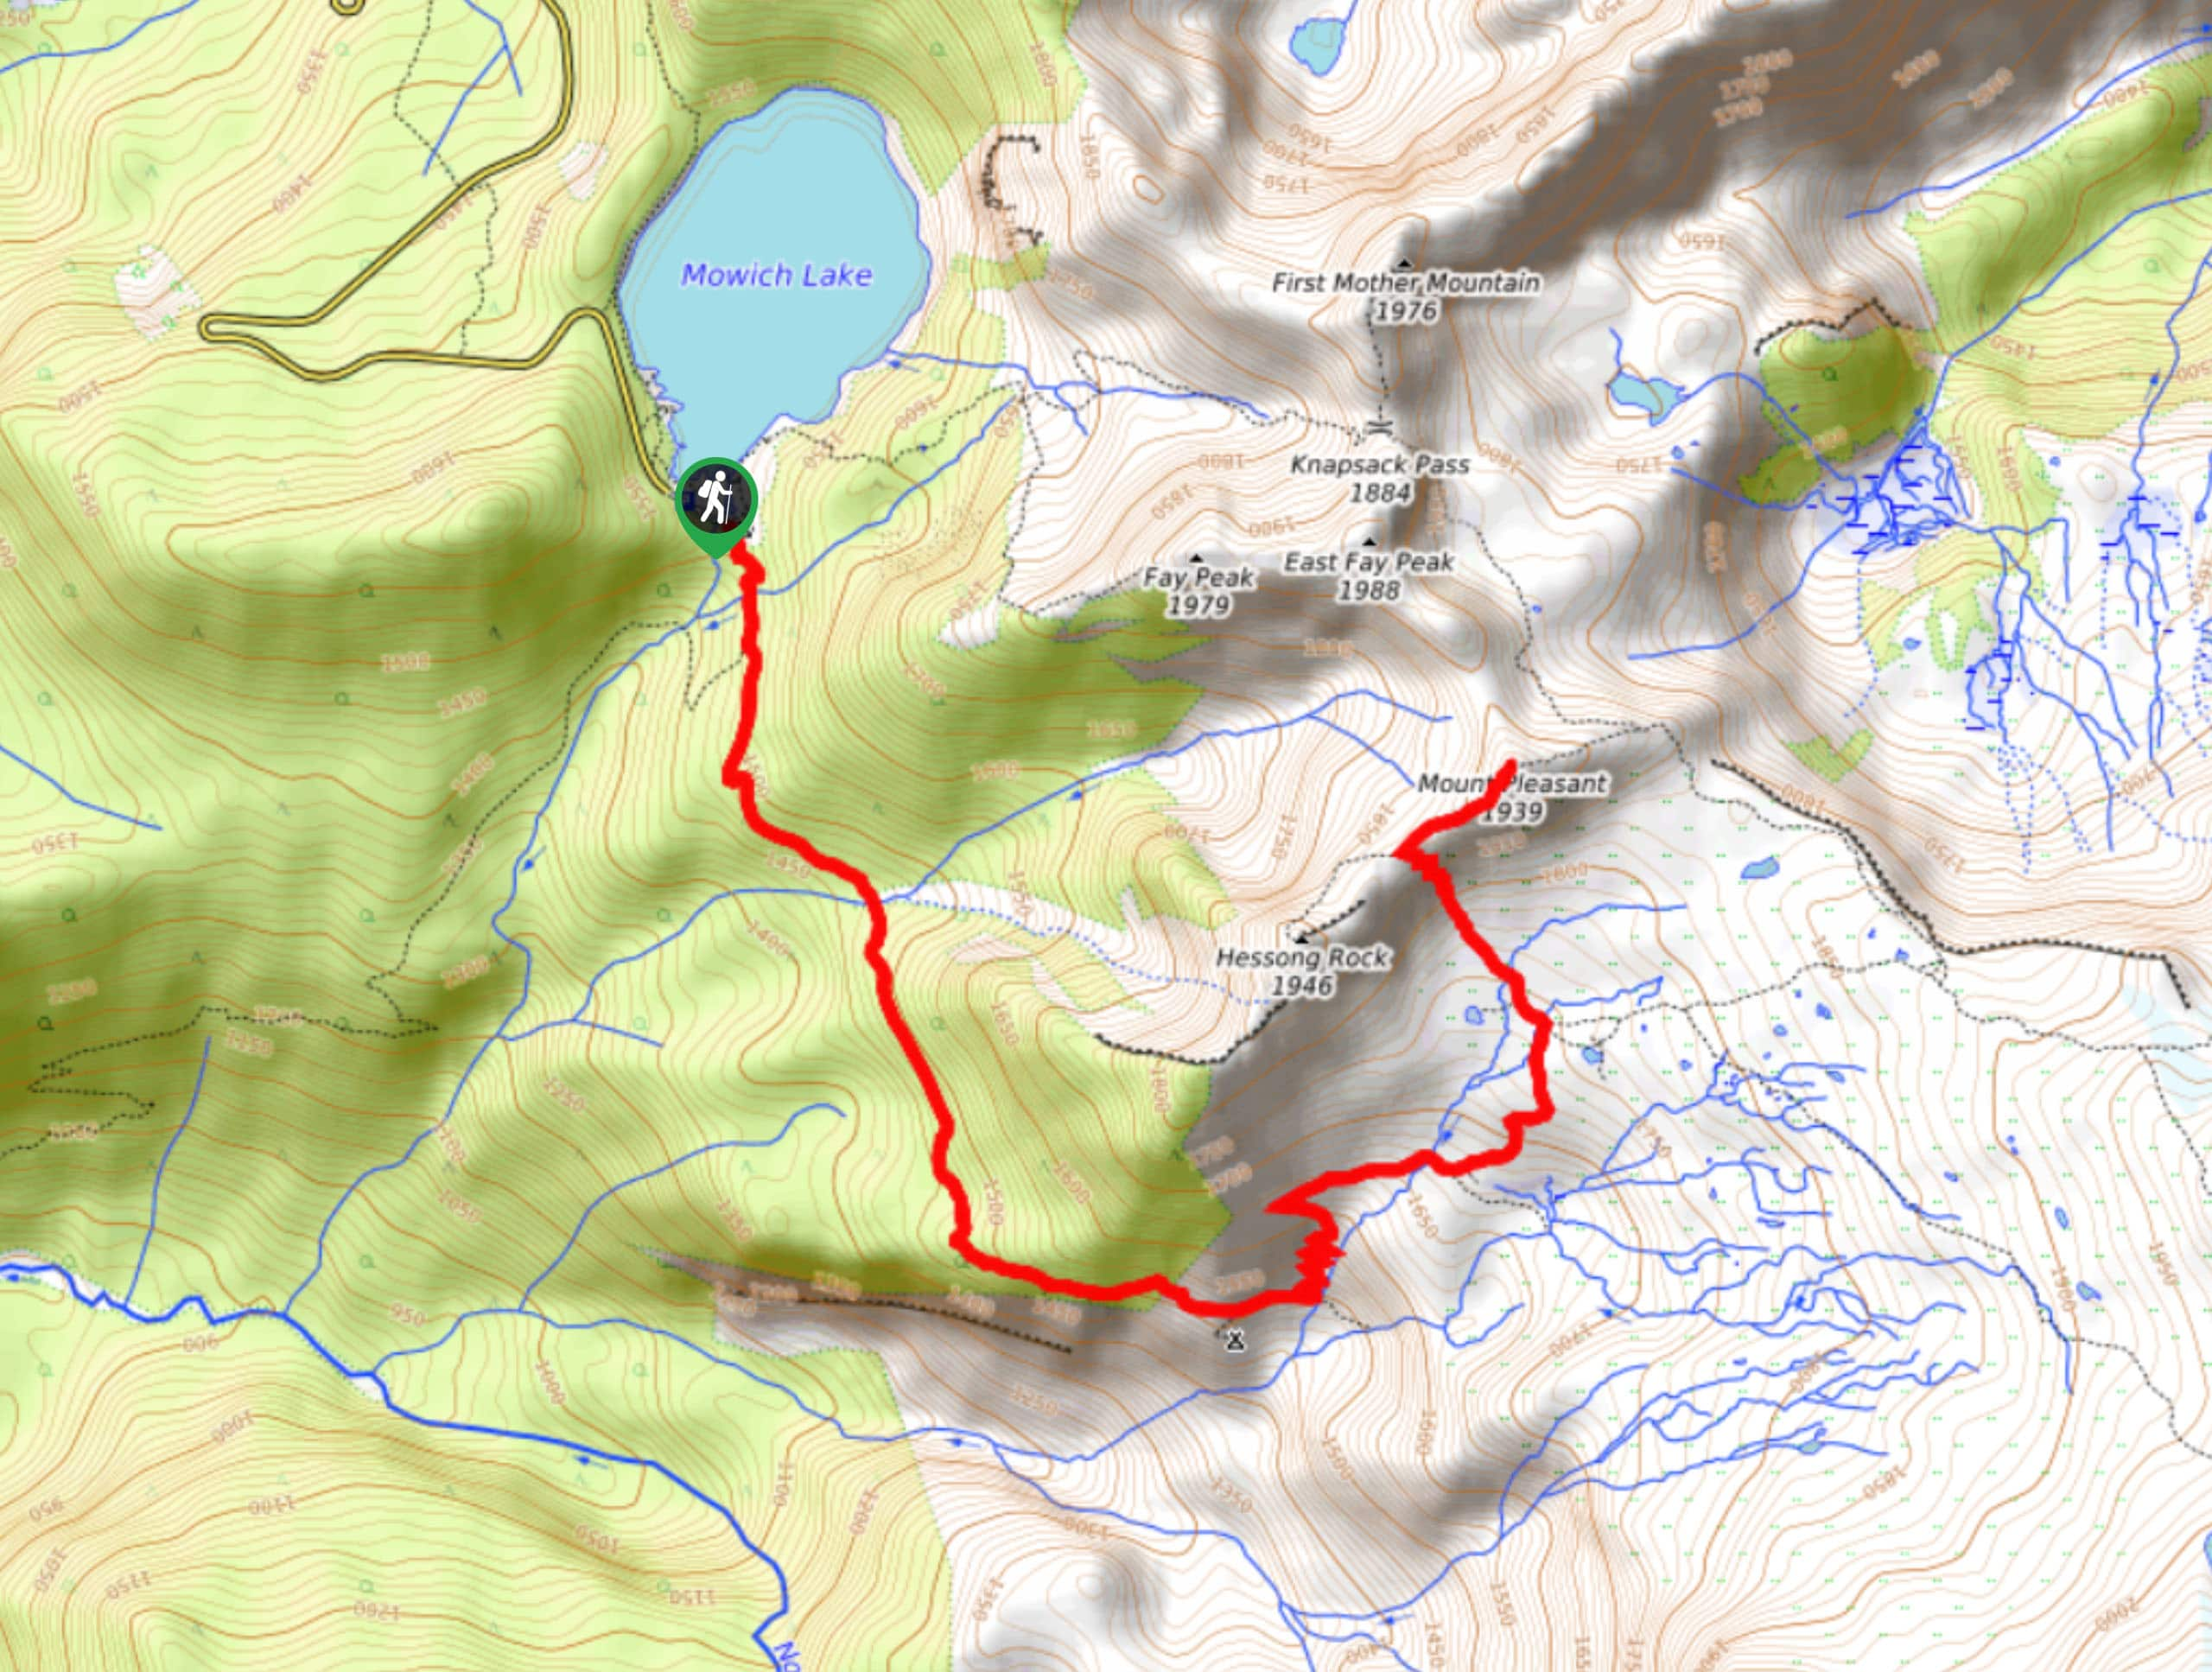 Spray Park Trail to Mount Pleasant Map